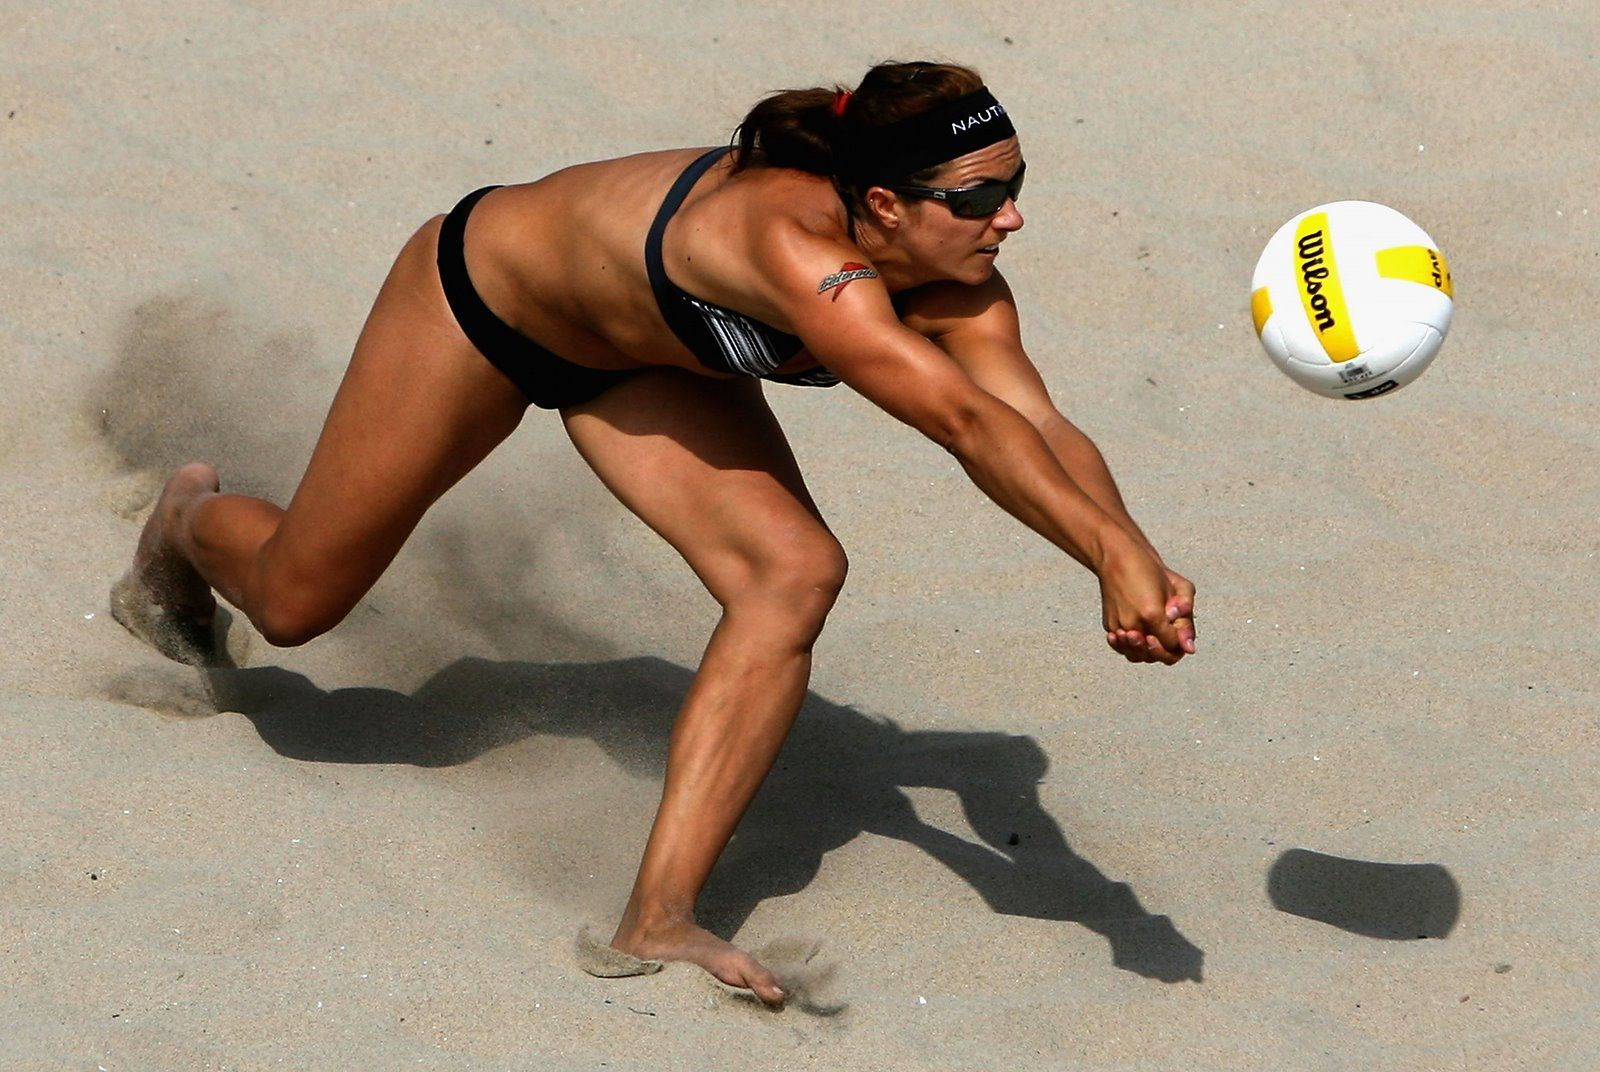 It S All About Vollyball Misty May Treanor Profile And Images Photos Misty May Treanor Fun Workouts Beach Volleyball